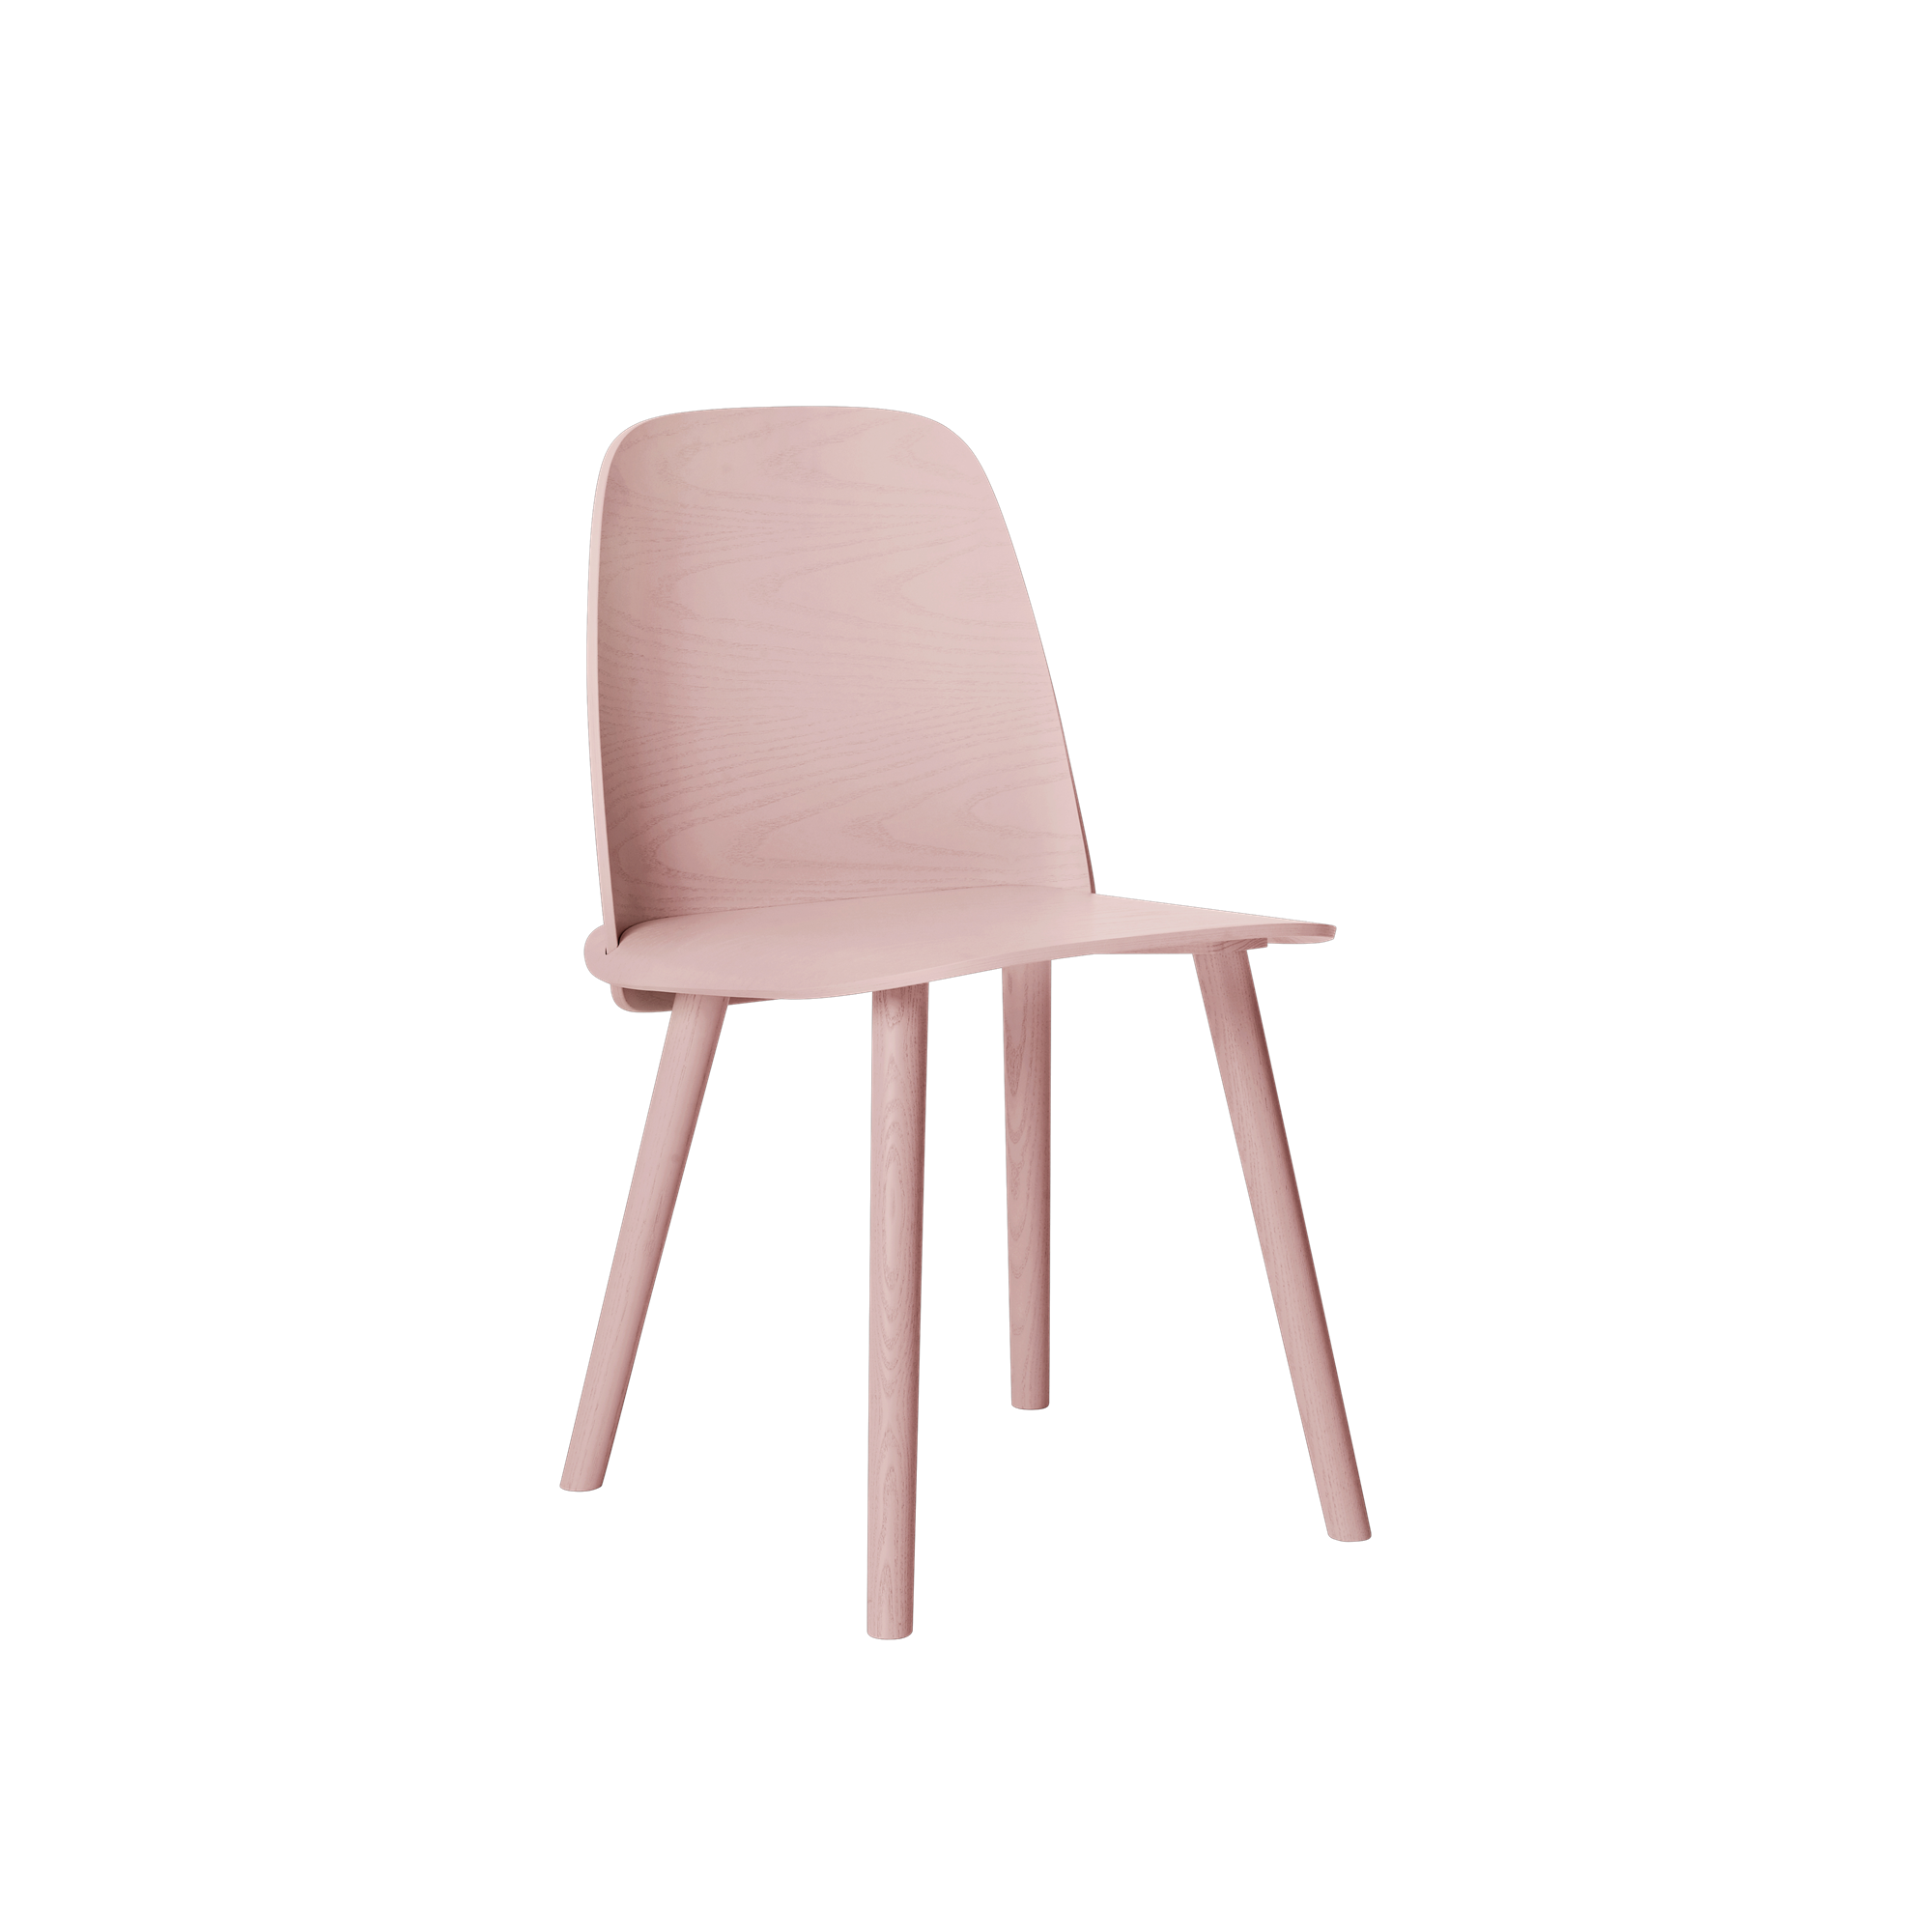 21406-nerd-chair-rose-1502286906-8718724.png